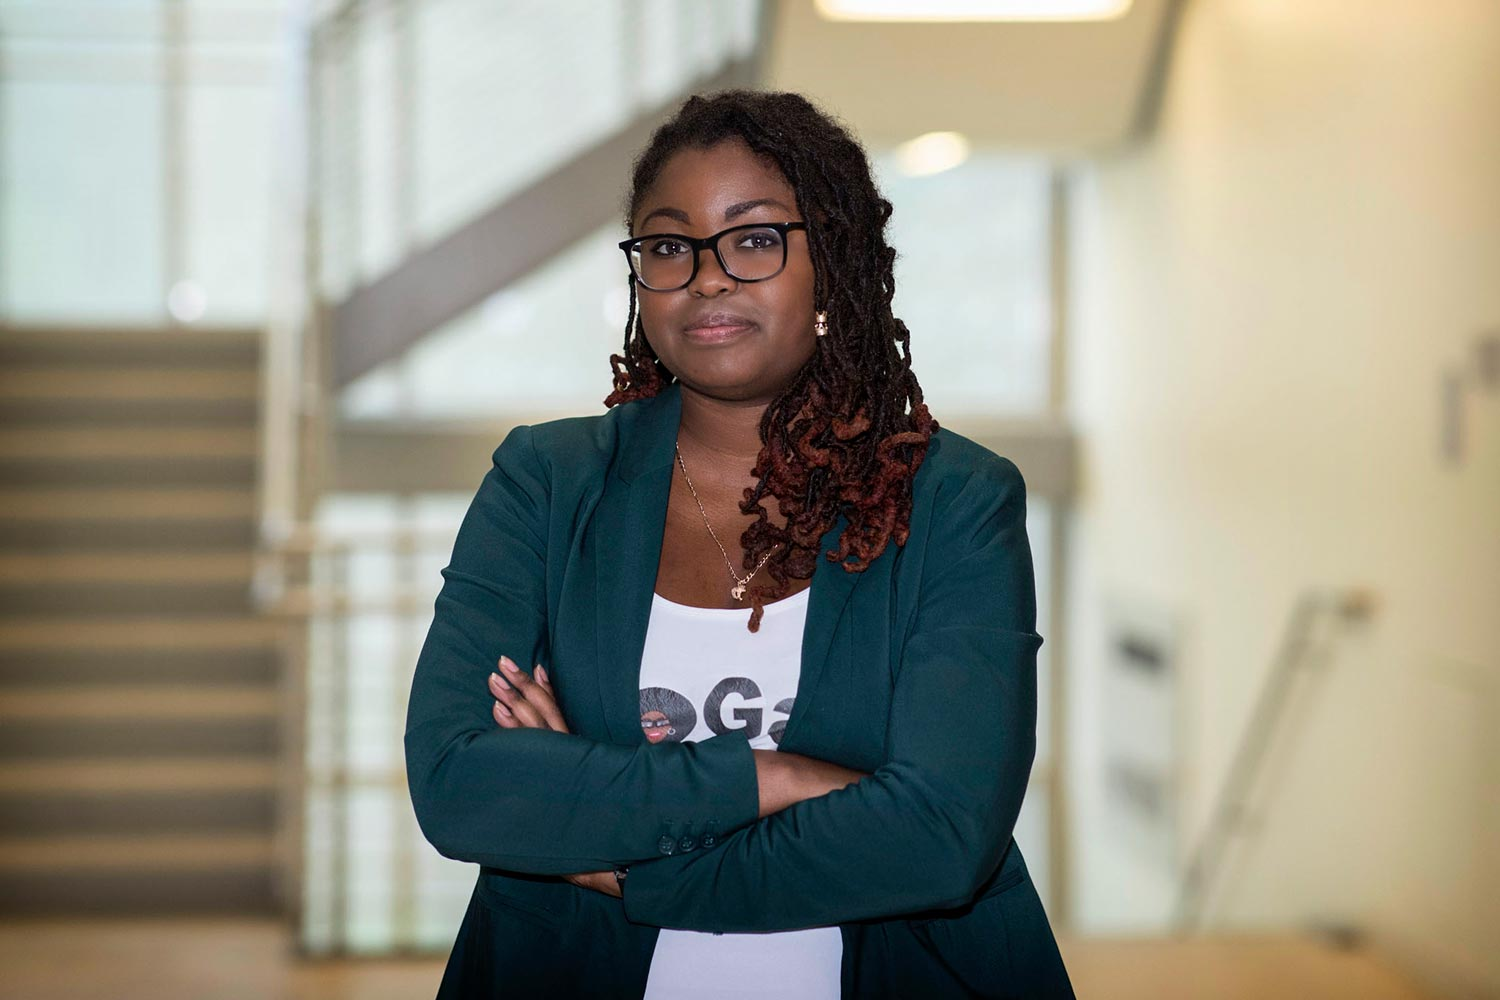 Shakira Hobbs has been fascinated with biofuel since she was an undergraduate.